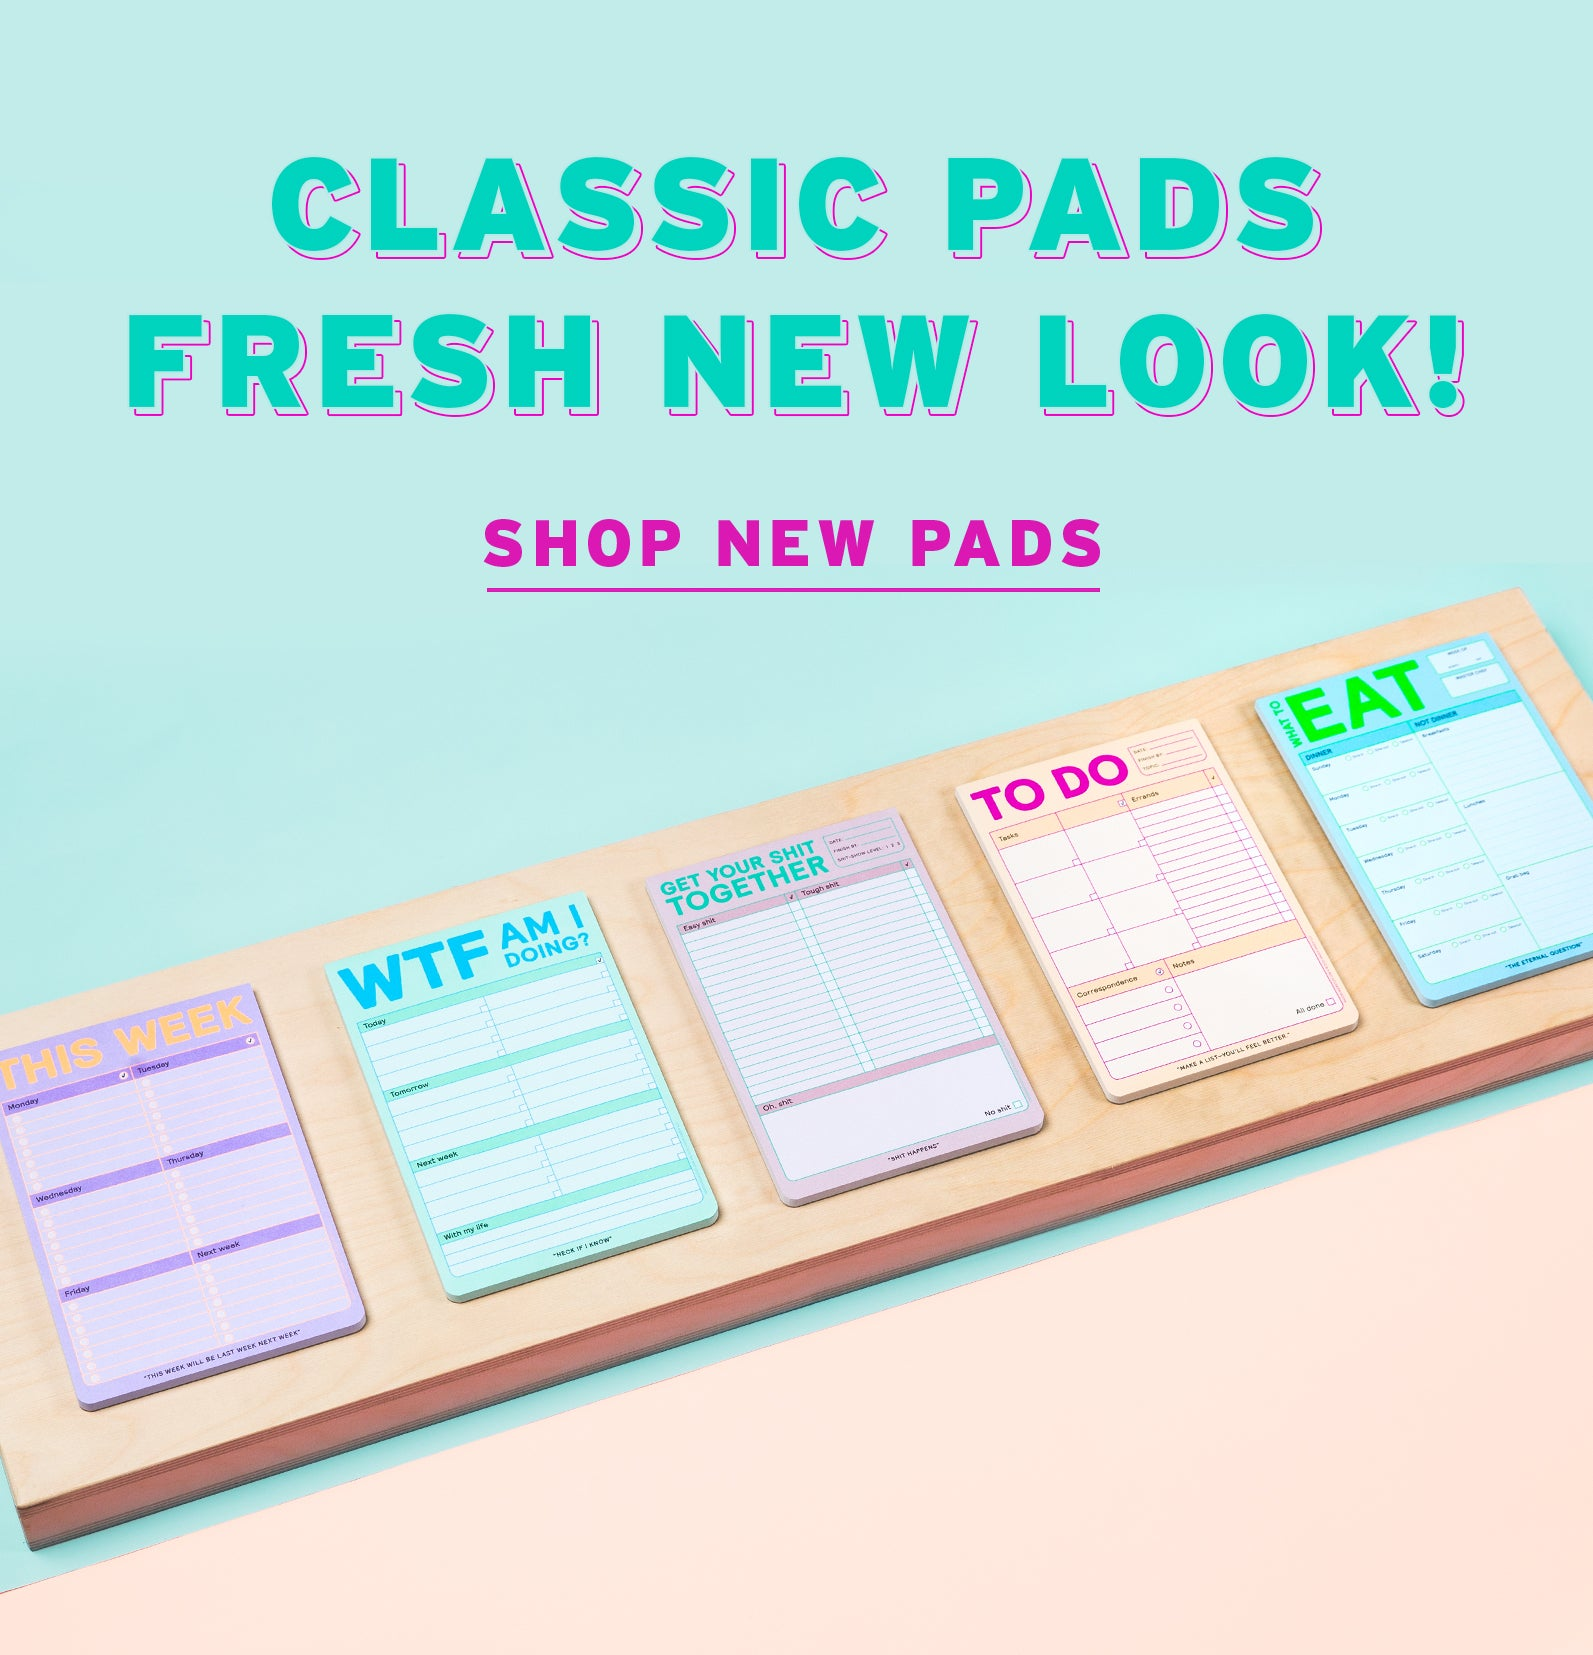 Classic Pads Fresh New Look! Shop New Pads